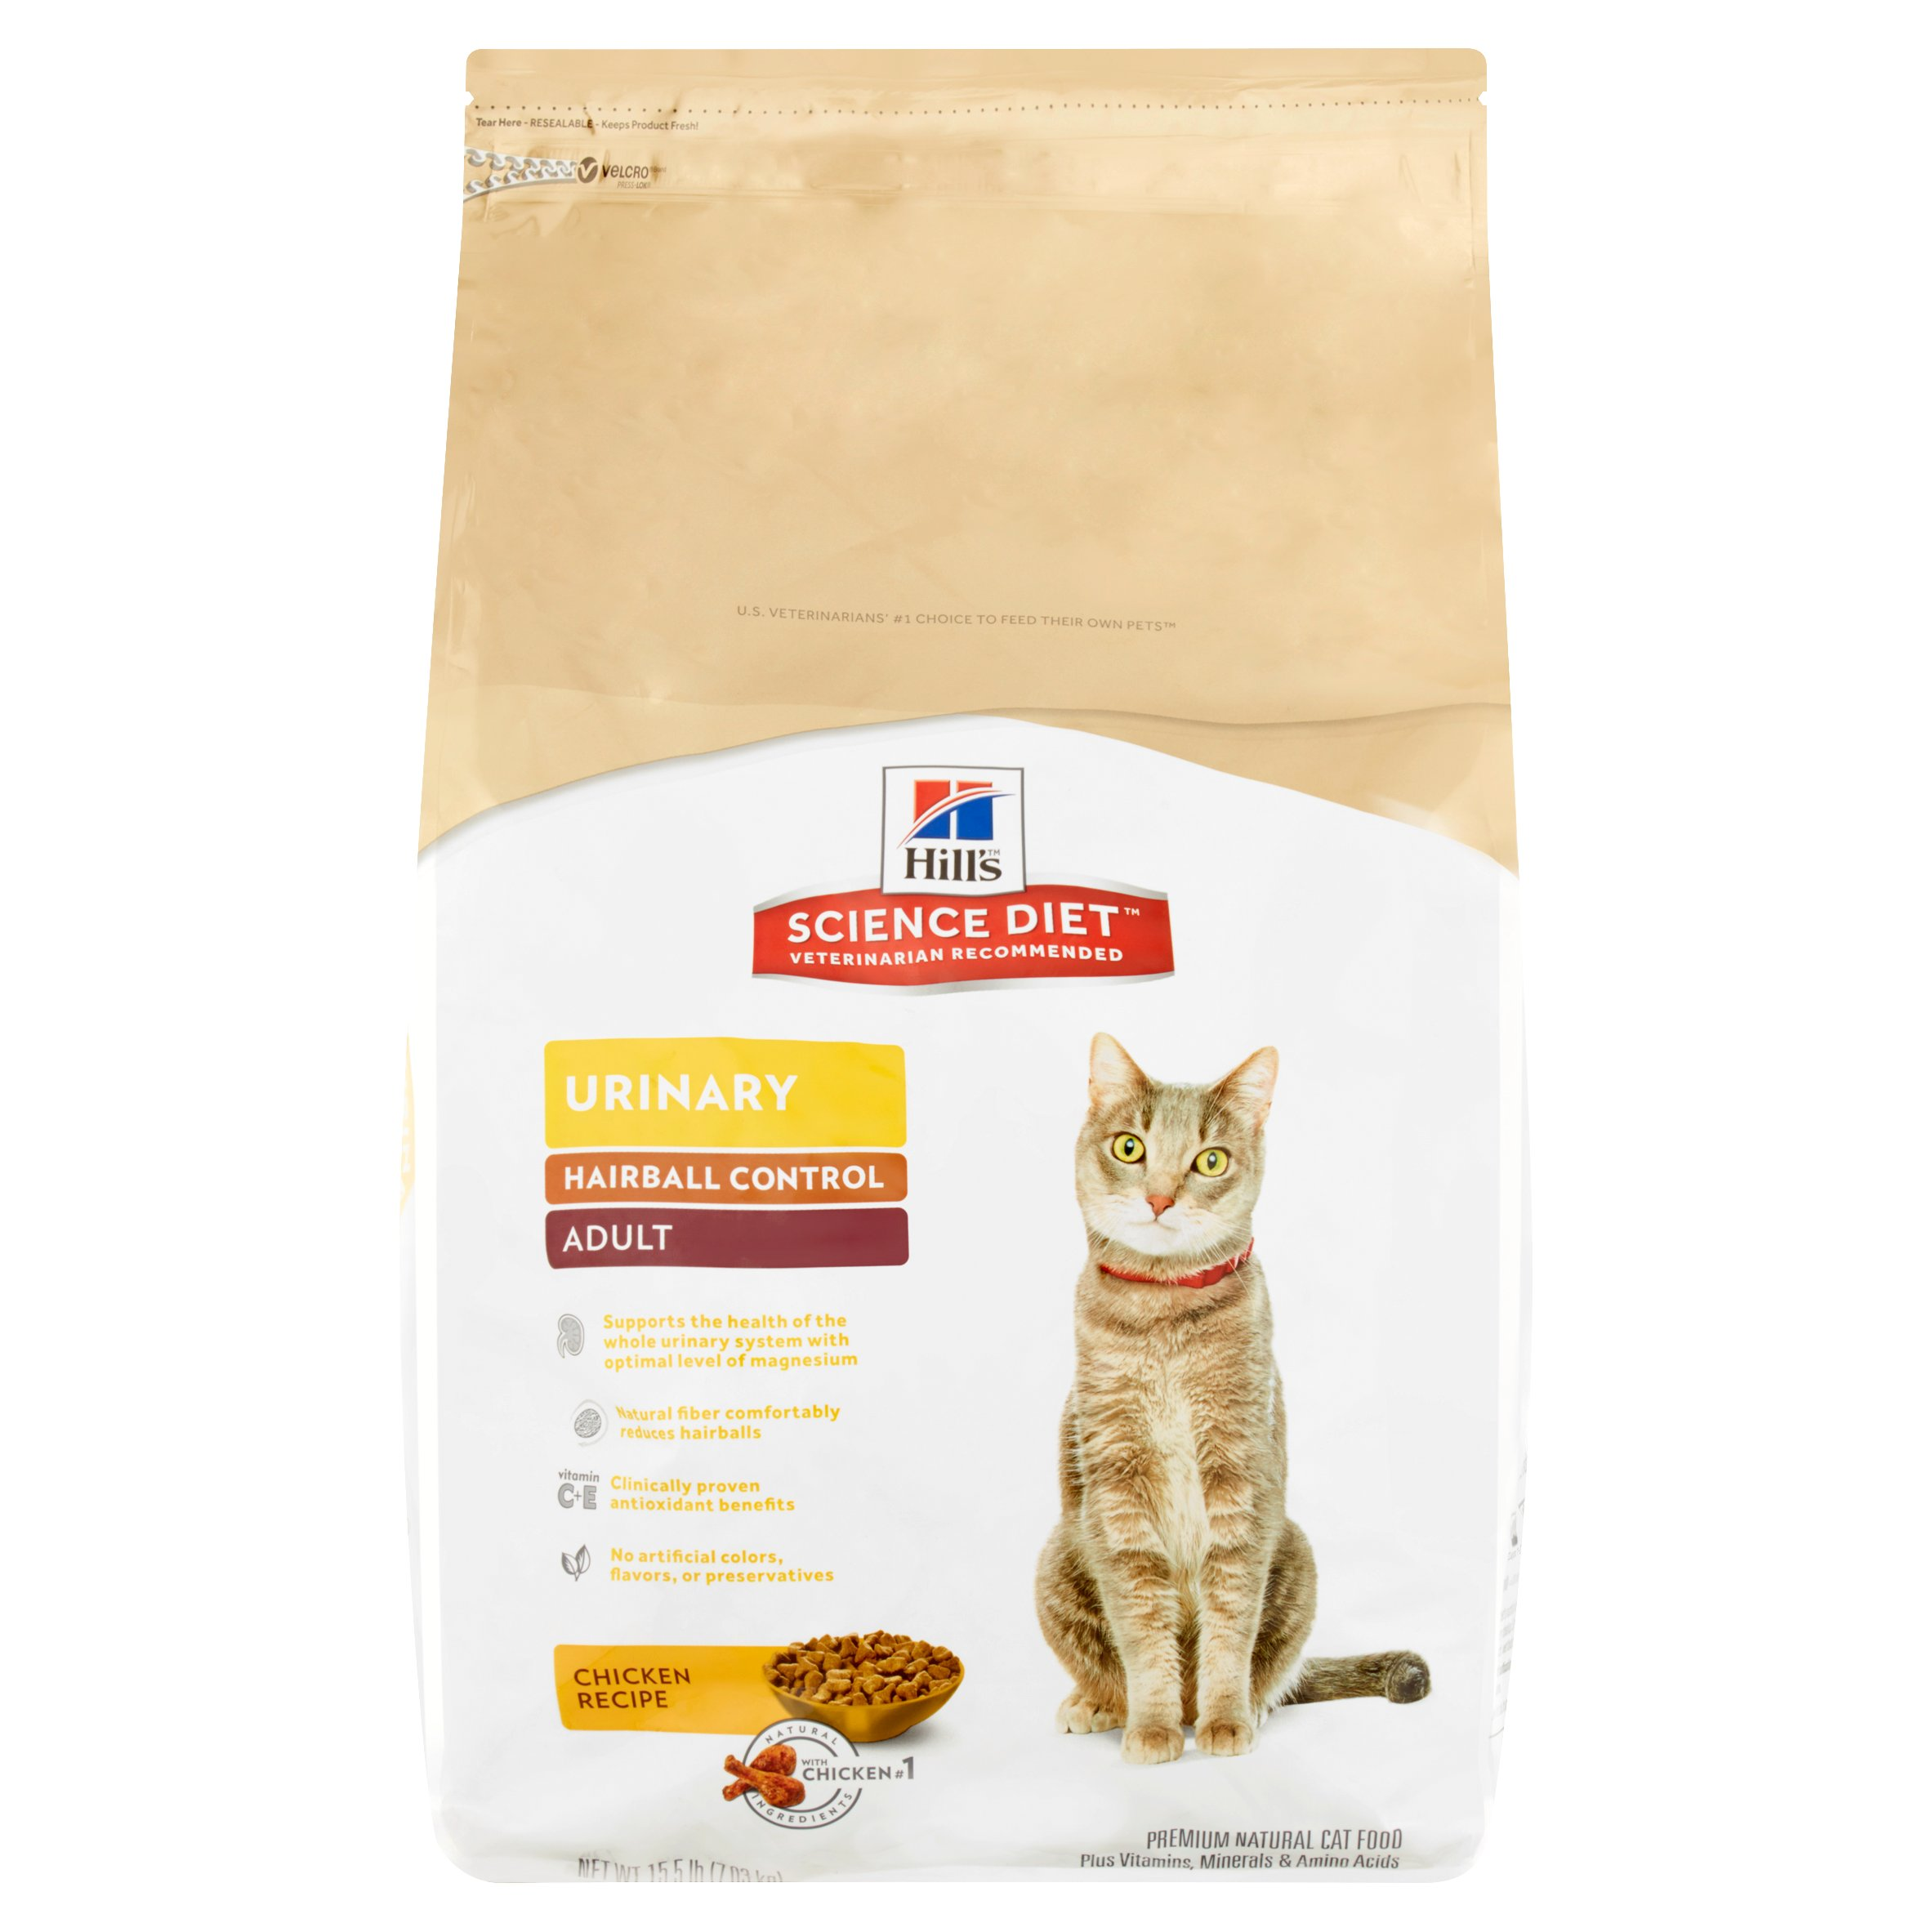 Hill's Science Diet Adult Urinary & Hairball Control Chicken Recipe Dry Cat Food, 15.5 lb bag by Hill's Pet Nutrition, Inc.